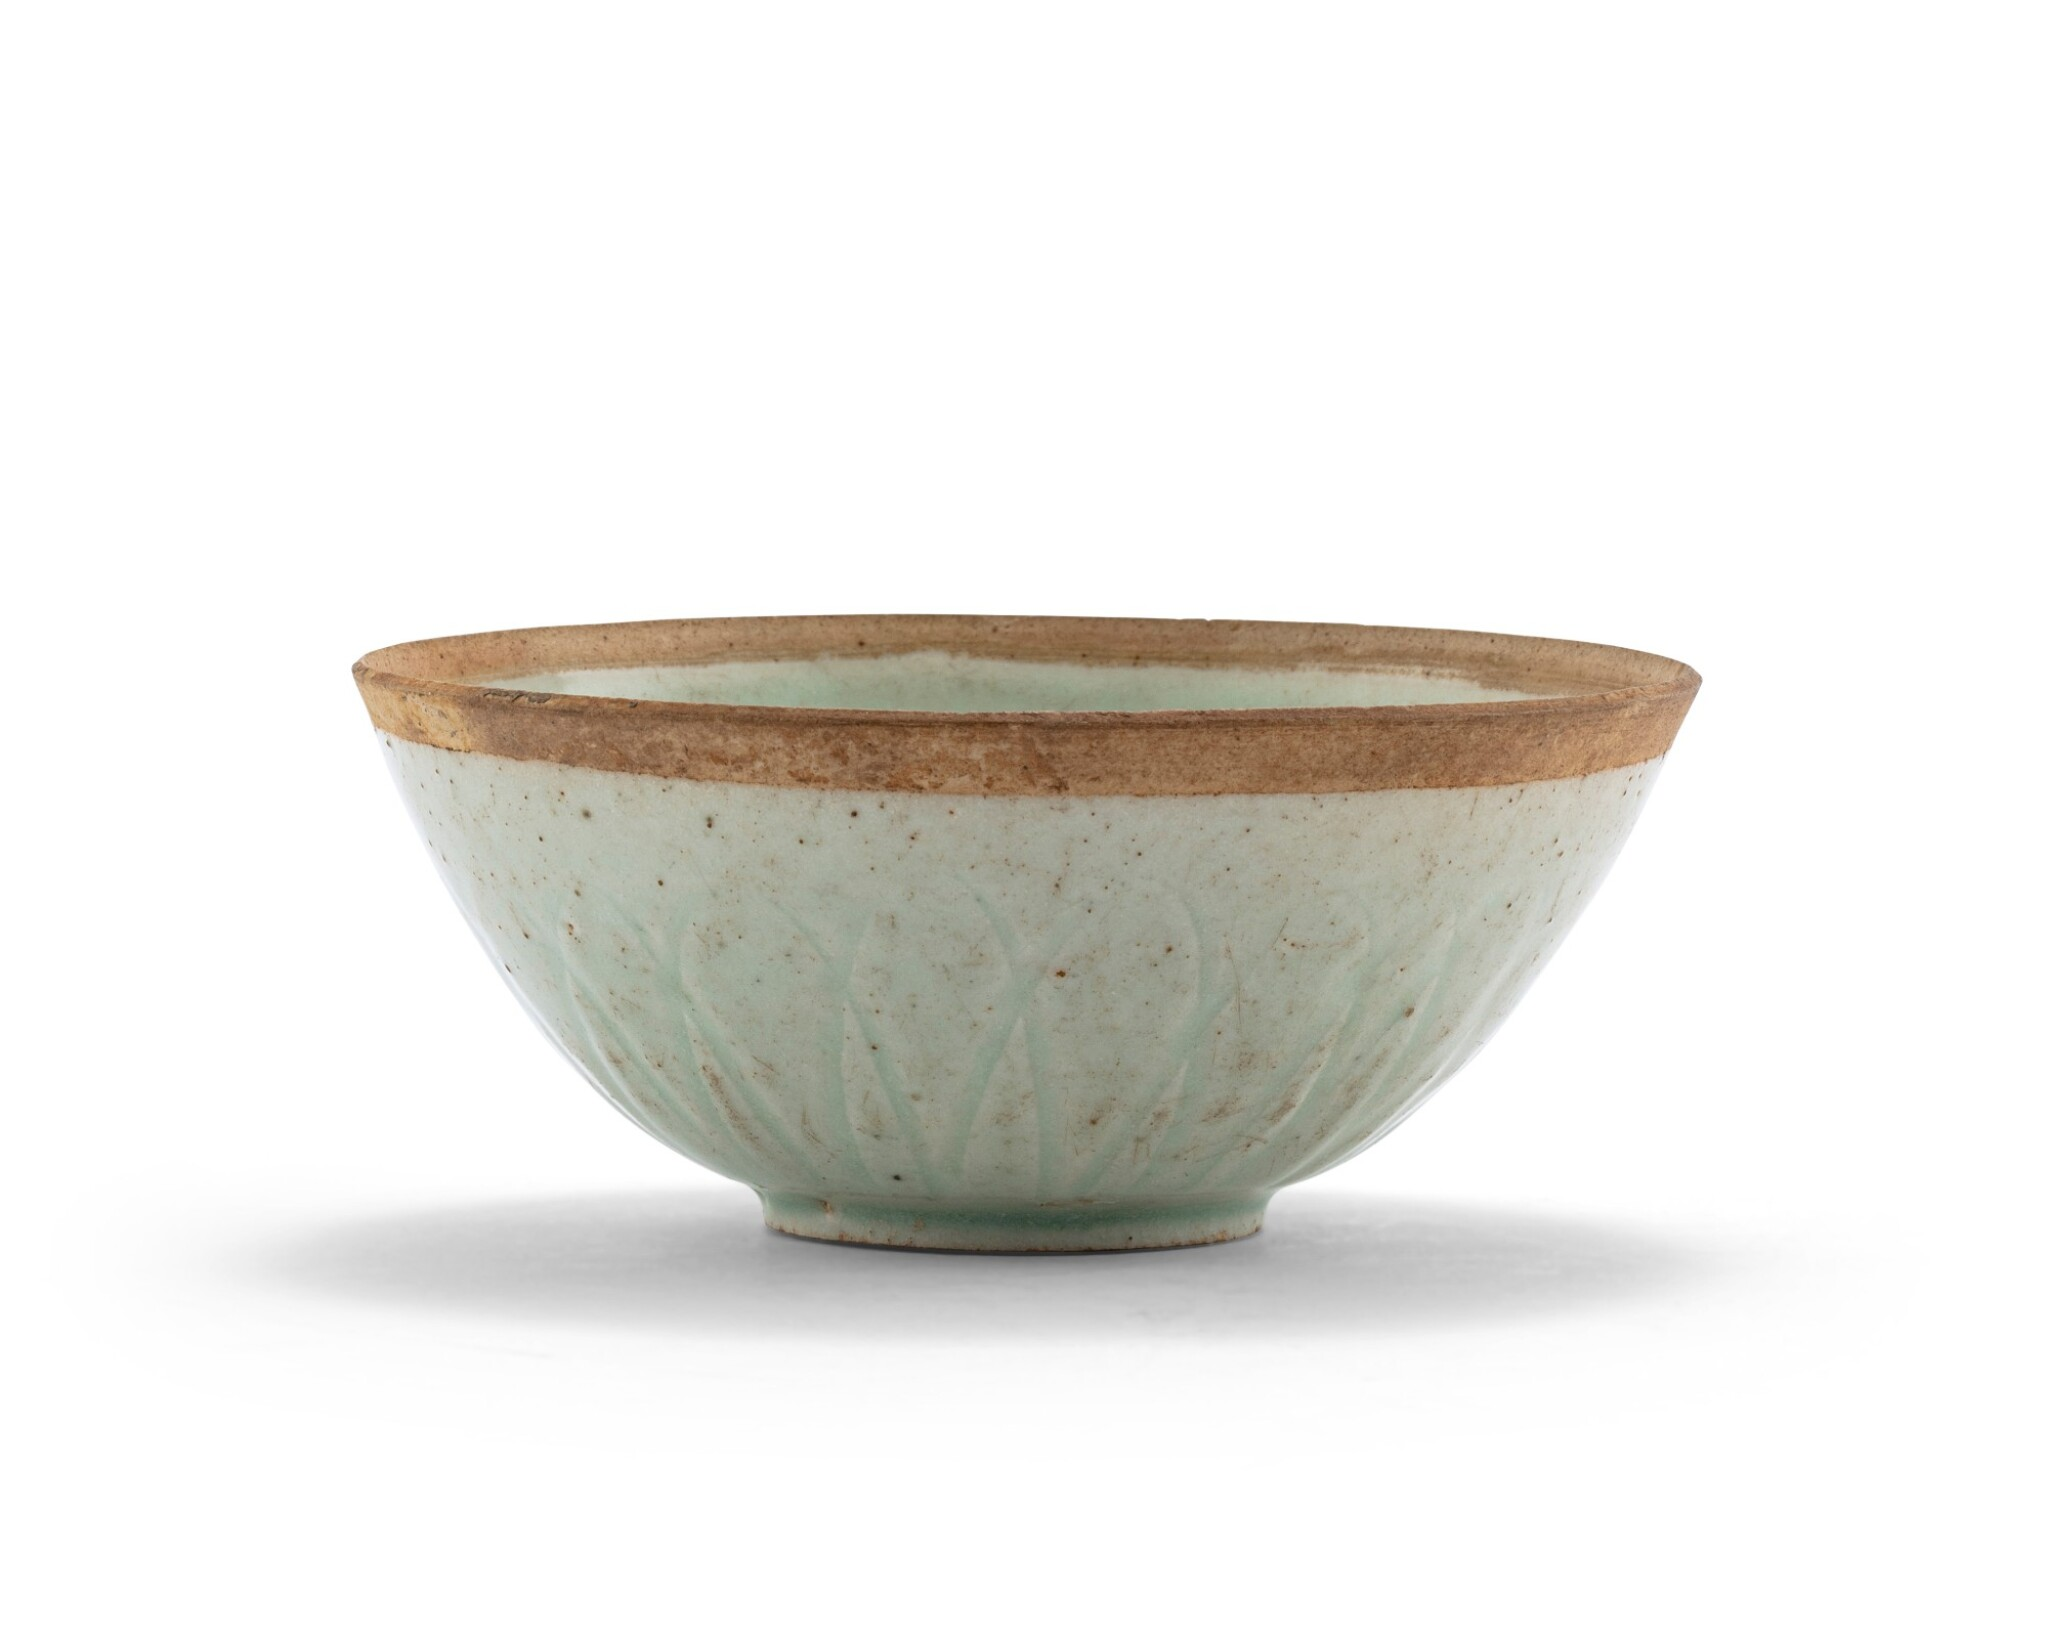 View 1 of Lot 5. Bol 'lotus' à glaçure qingbai Dynastie des Song du Sud | 南宋 青白釉蓮瓣盌 | A qingbai 'lotus' bowl, Southern Song Dynasty.